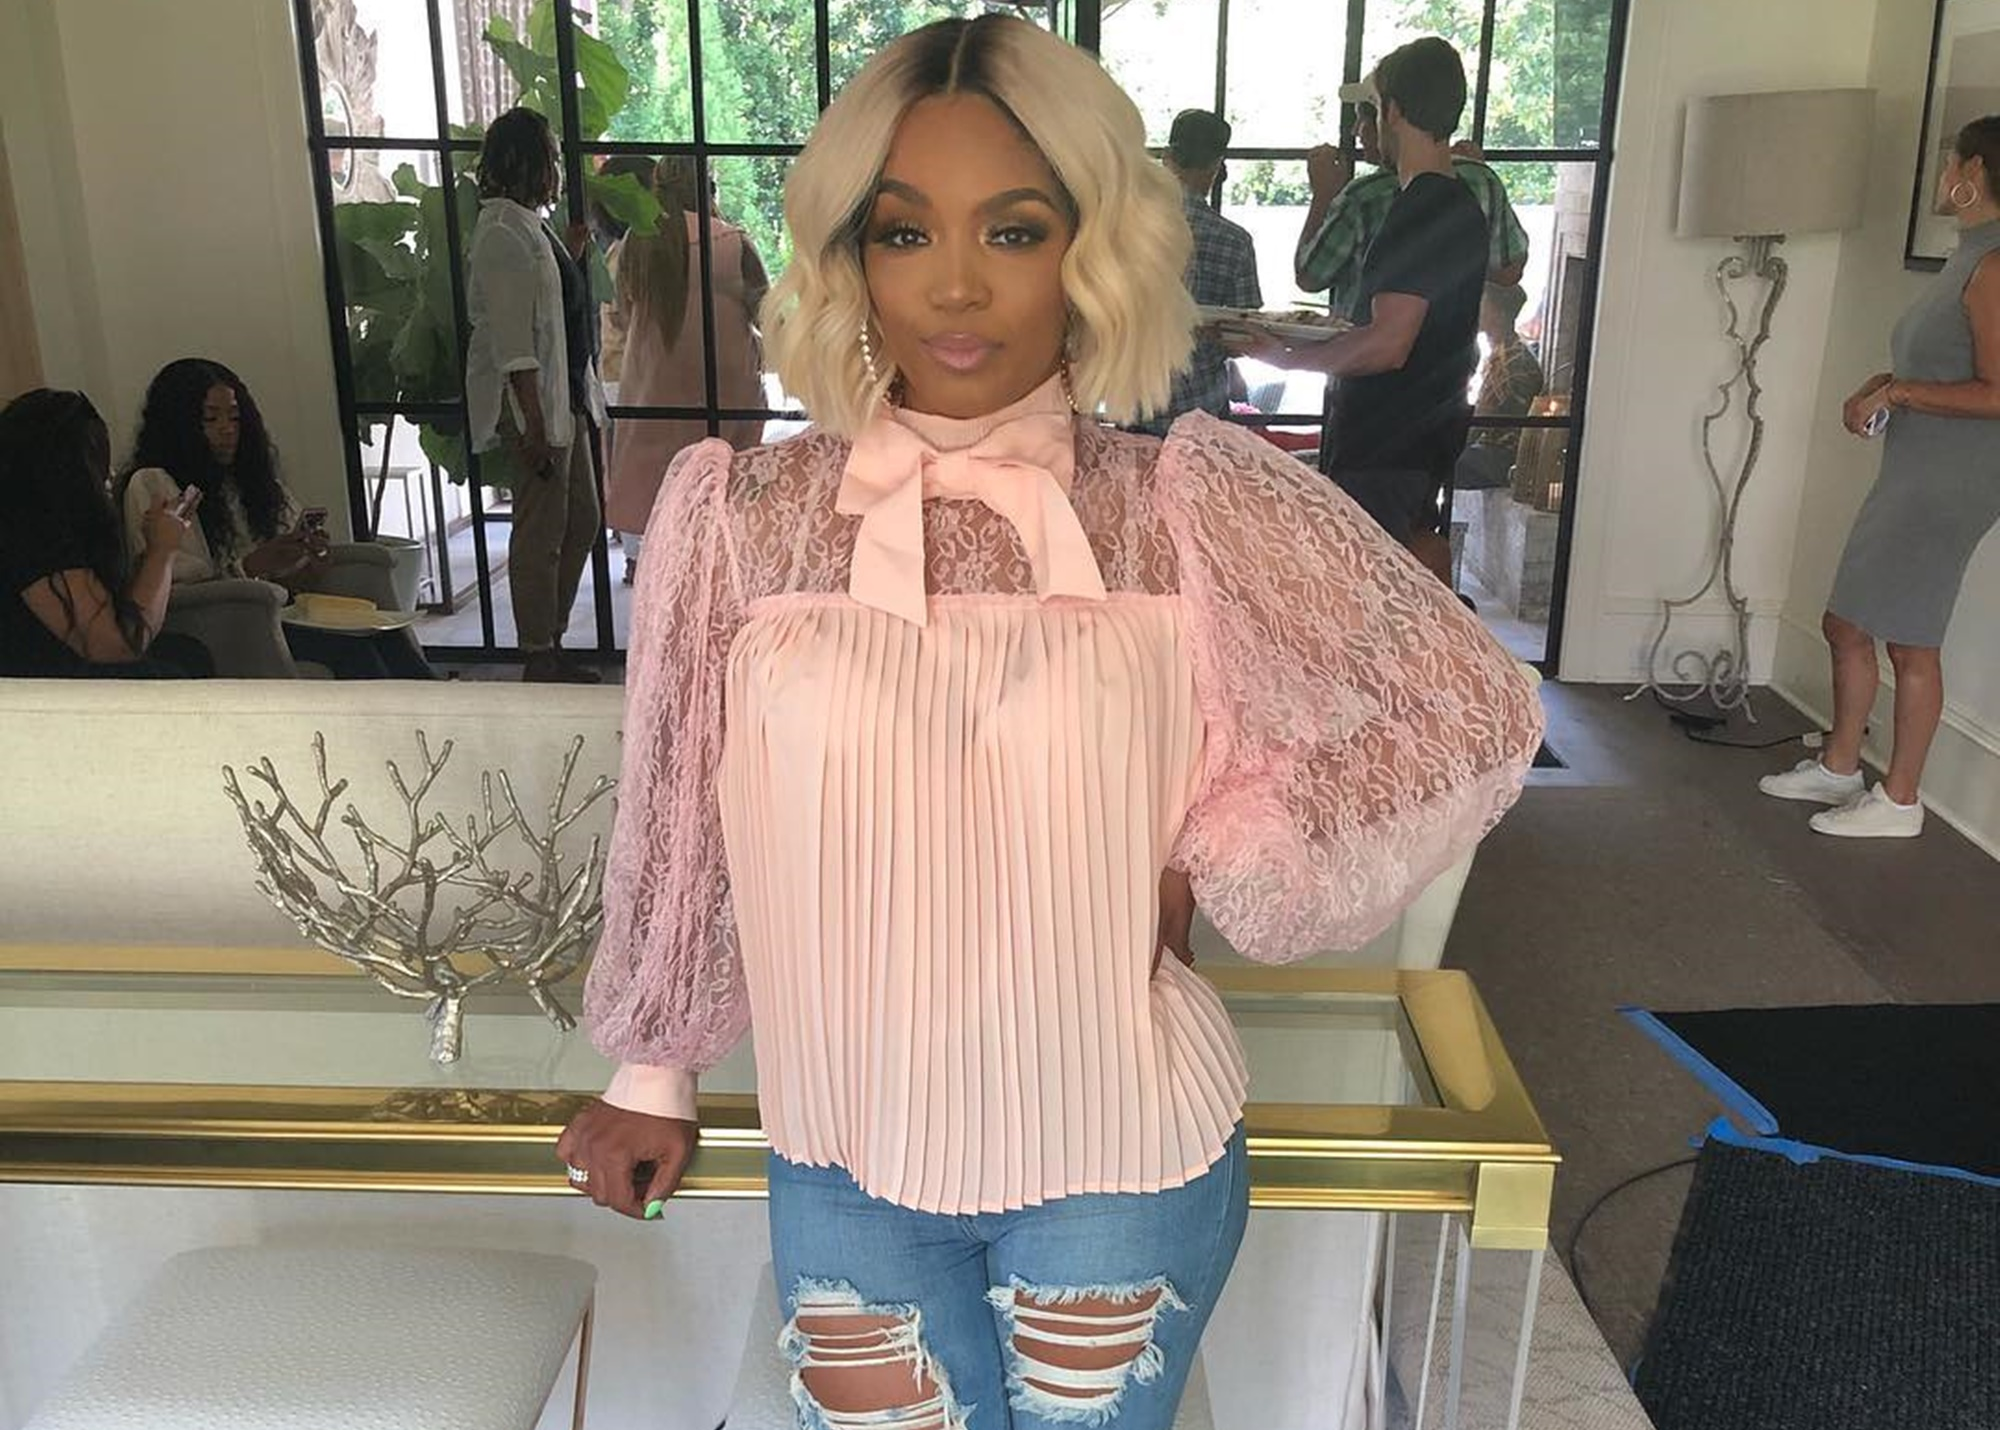 Rasheeda Frost Shares Her Favorite Look From The Premiere Episode Of LHHATL - Fans Criticize Alexis Skyy For Being Disrespectful